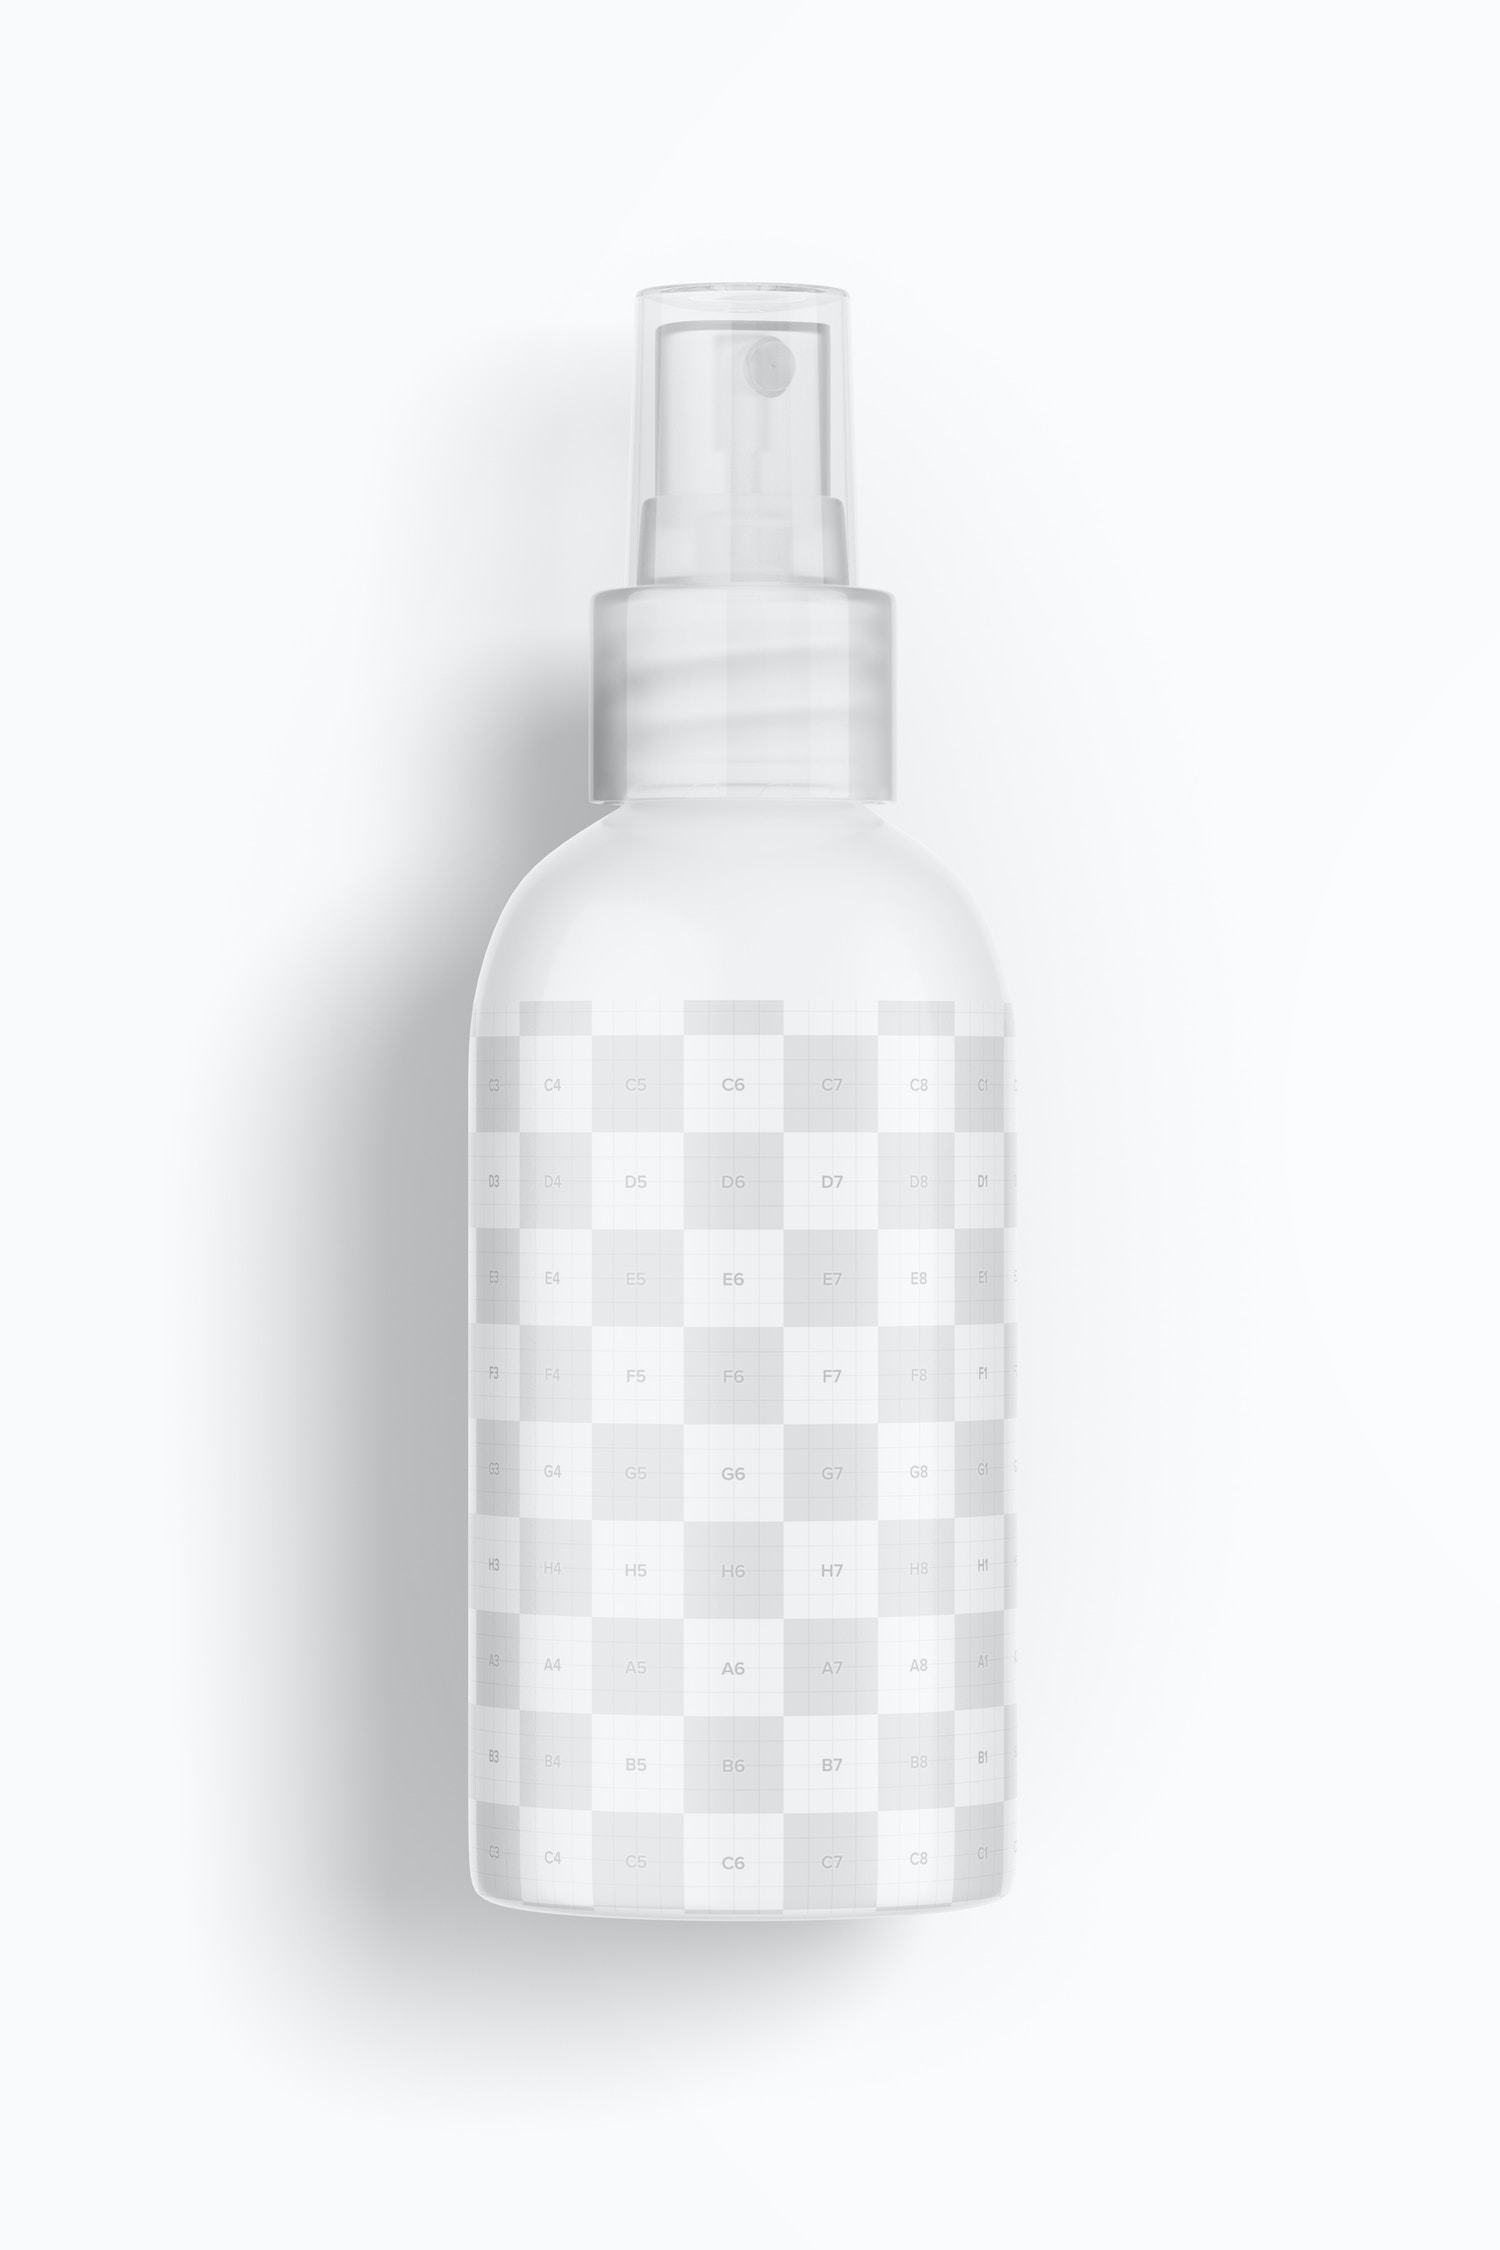 4 oz Spray Rounded 03 Mockup, Top View